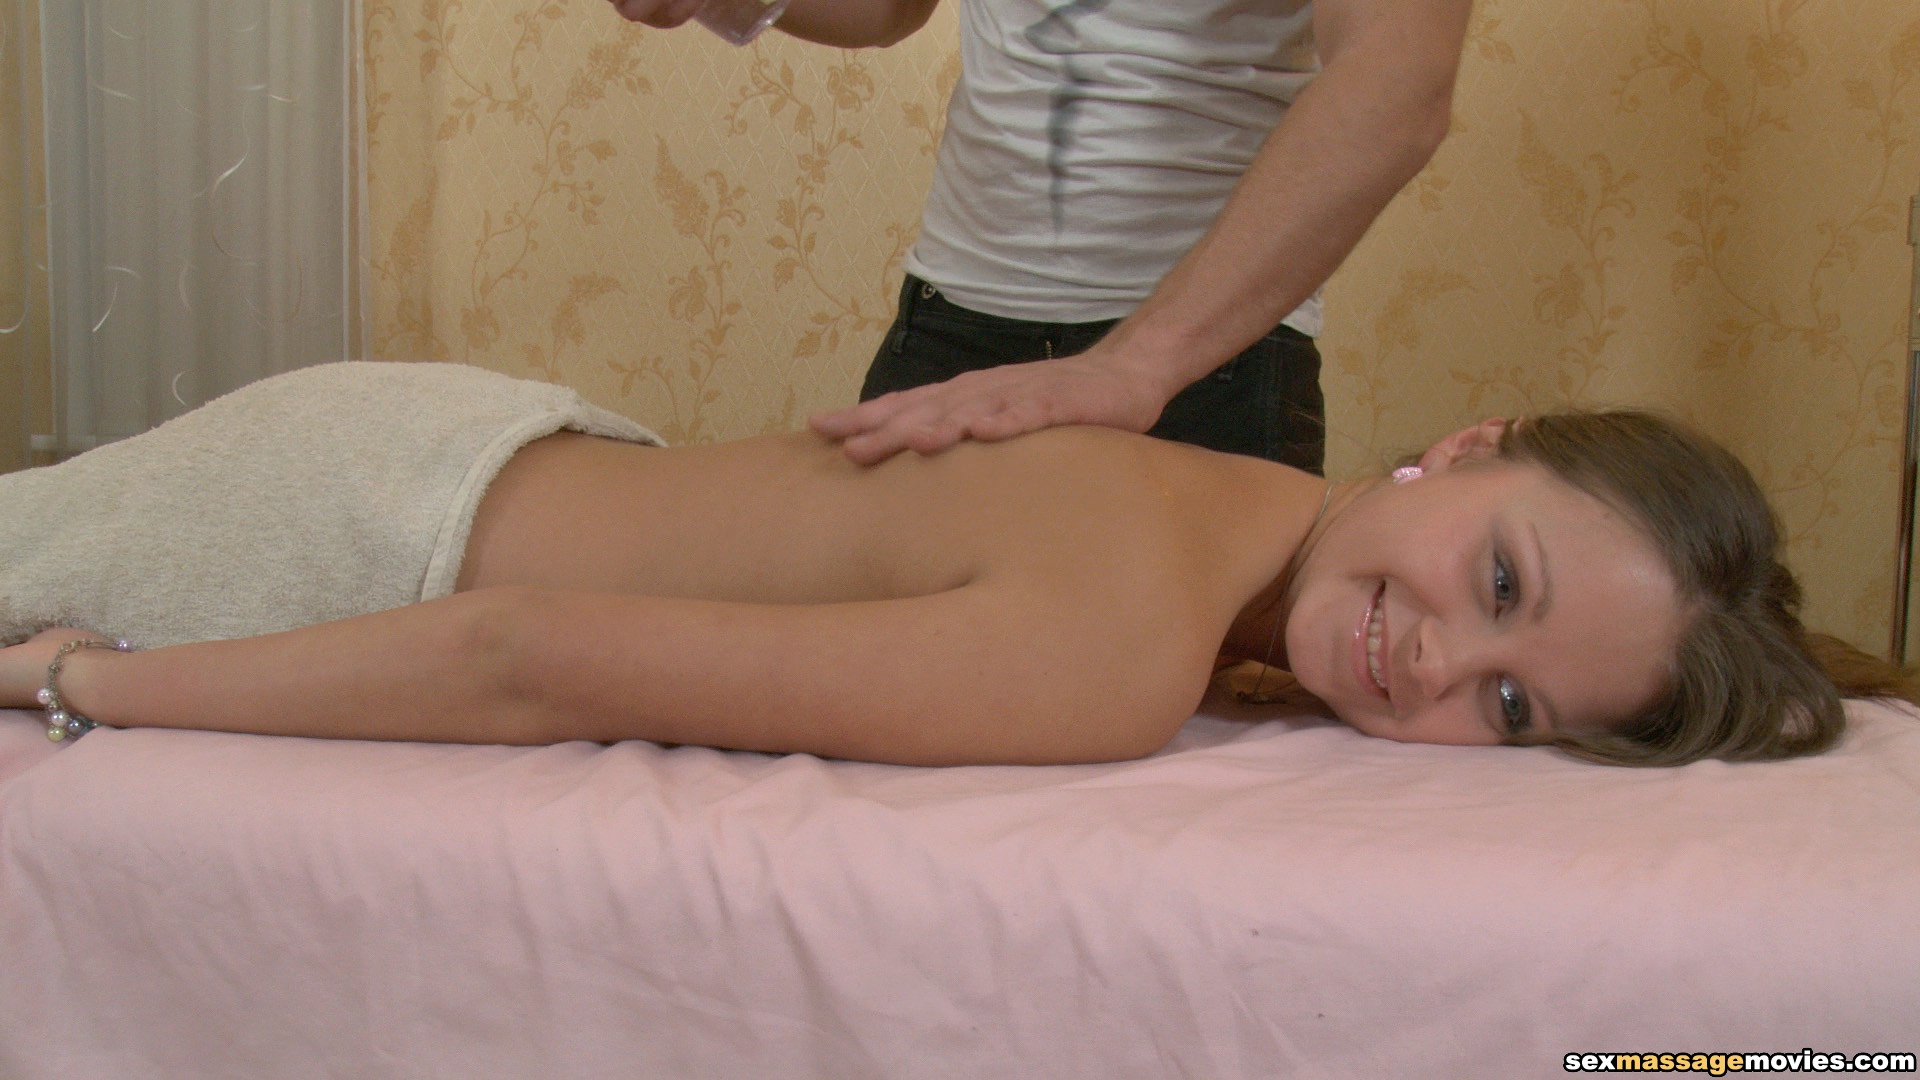 tantric genital massage video Boston, Massachusetts